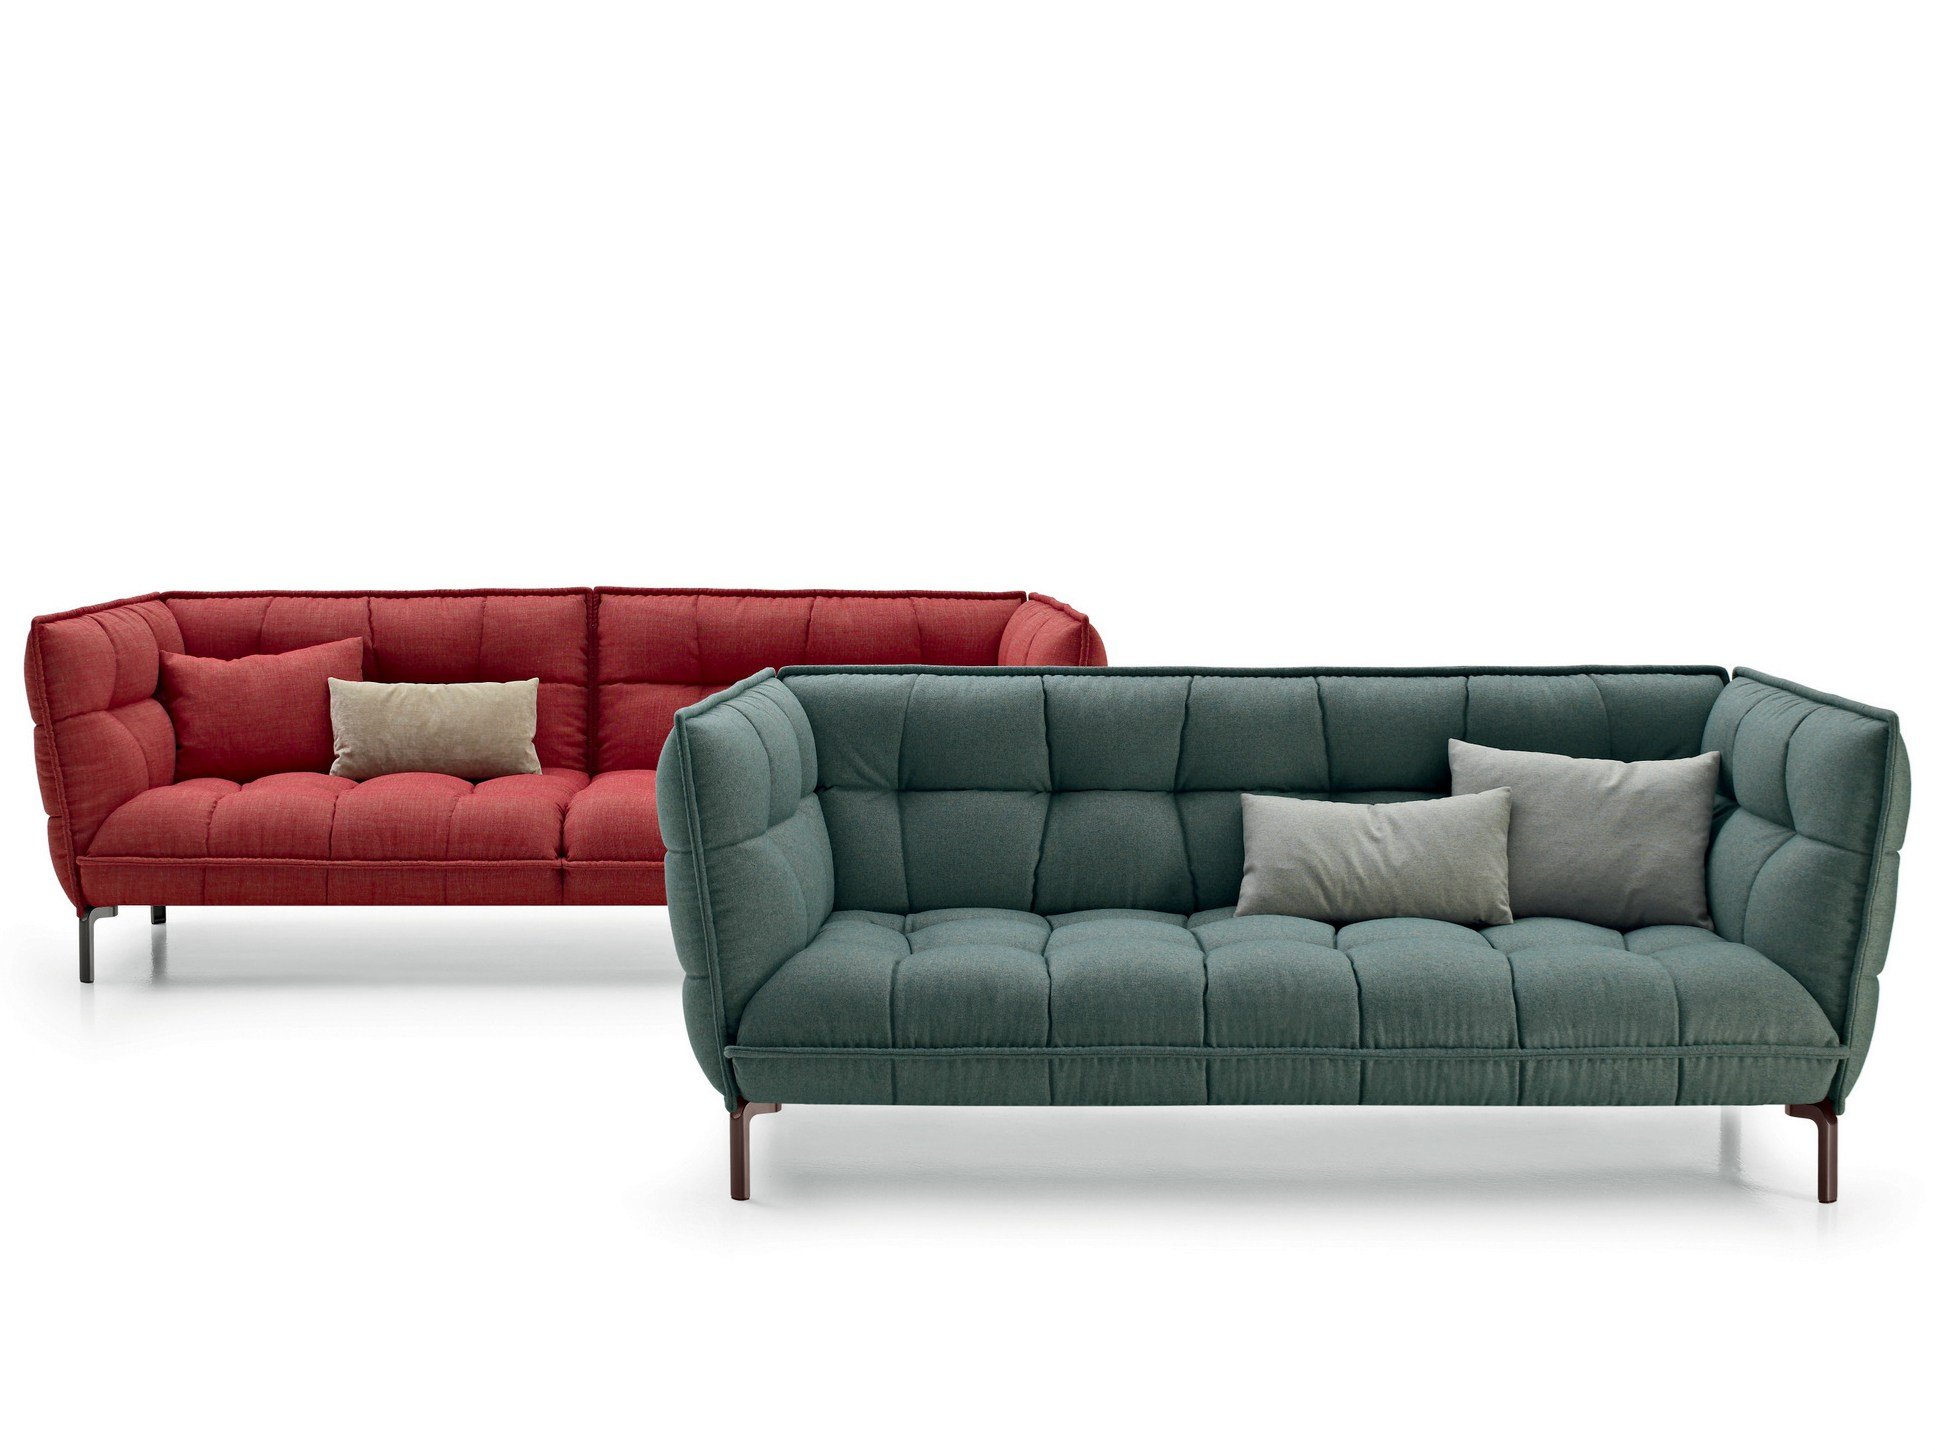 Tufted fabric sofa husk sofa by b b italia design patricia for B en b italia